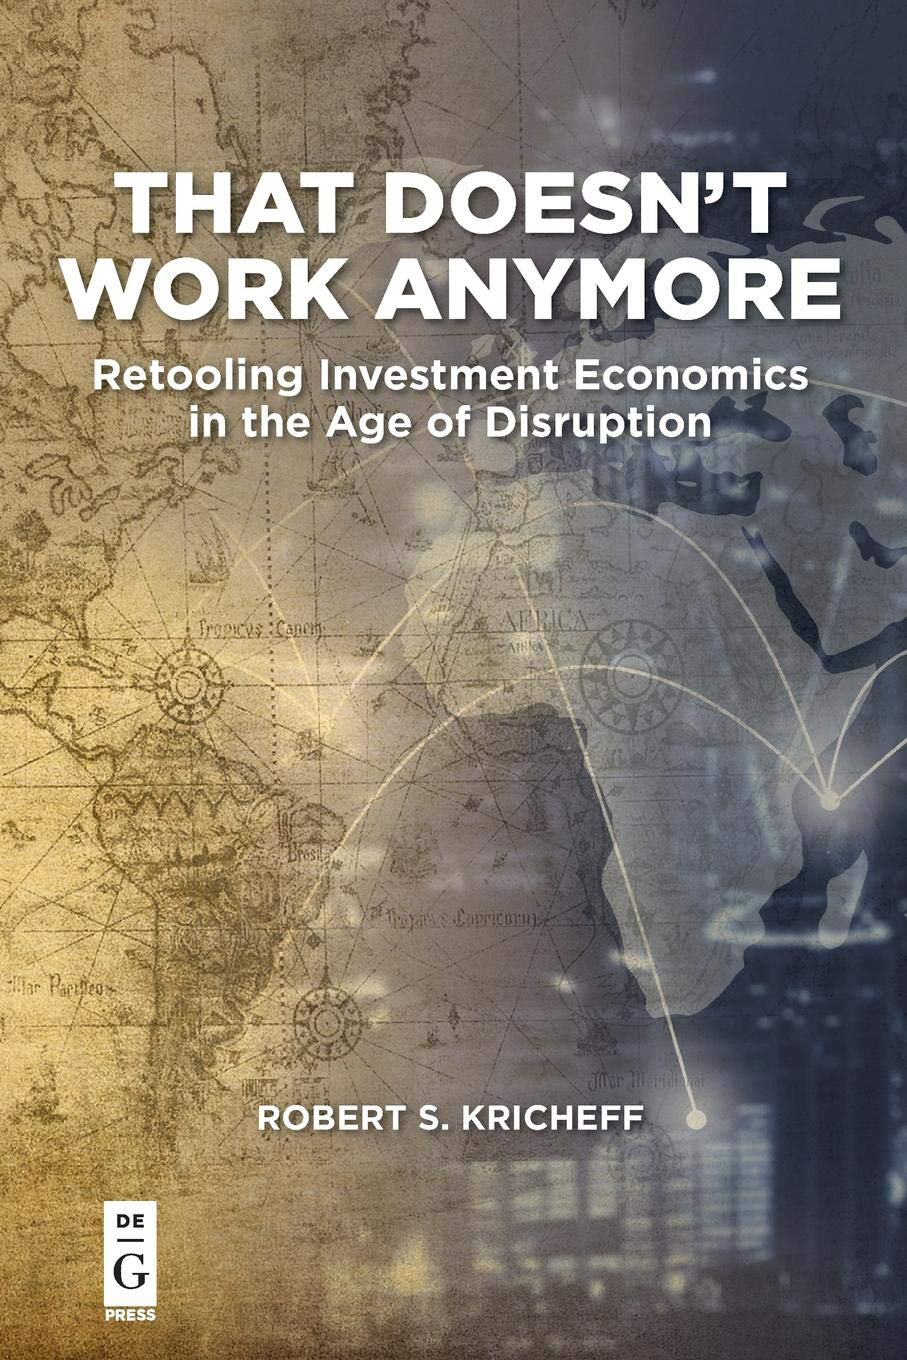 That-Doesn't-Work-Anymore-by-Robert-S. -Kricheff - Robert S. Kricheff provides an economics lesson for the new age, exploring the ways tech impacts the stock market and how to adapt.